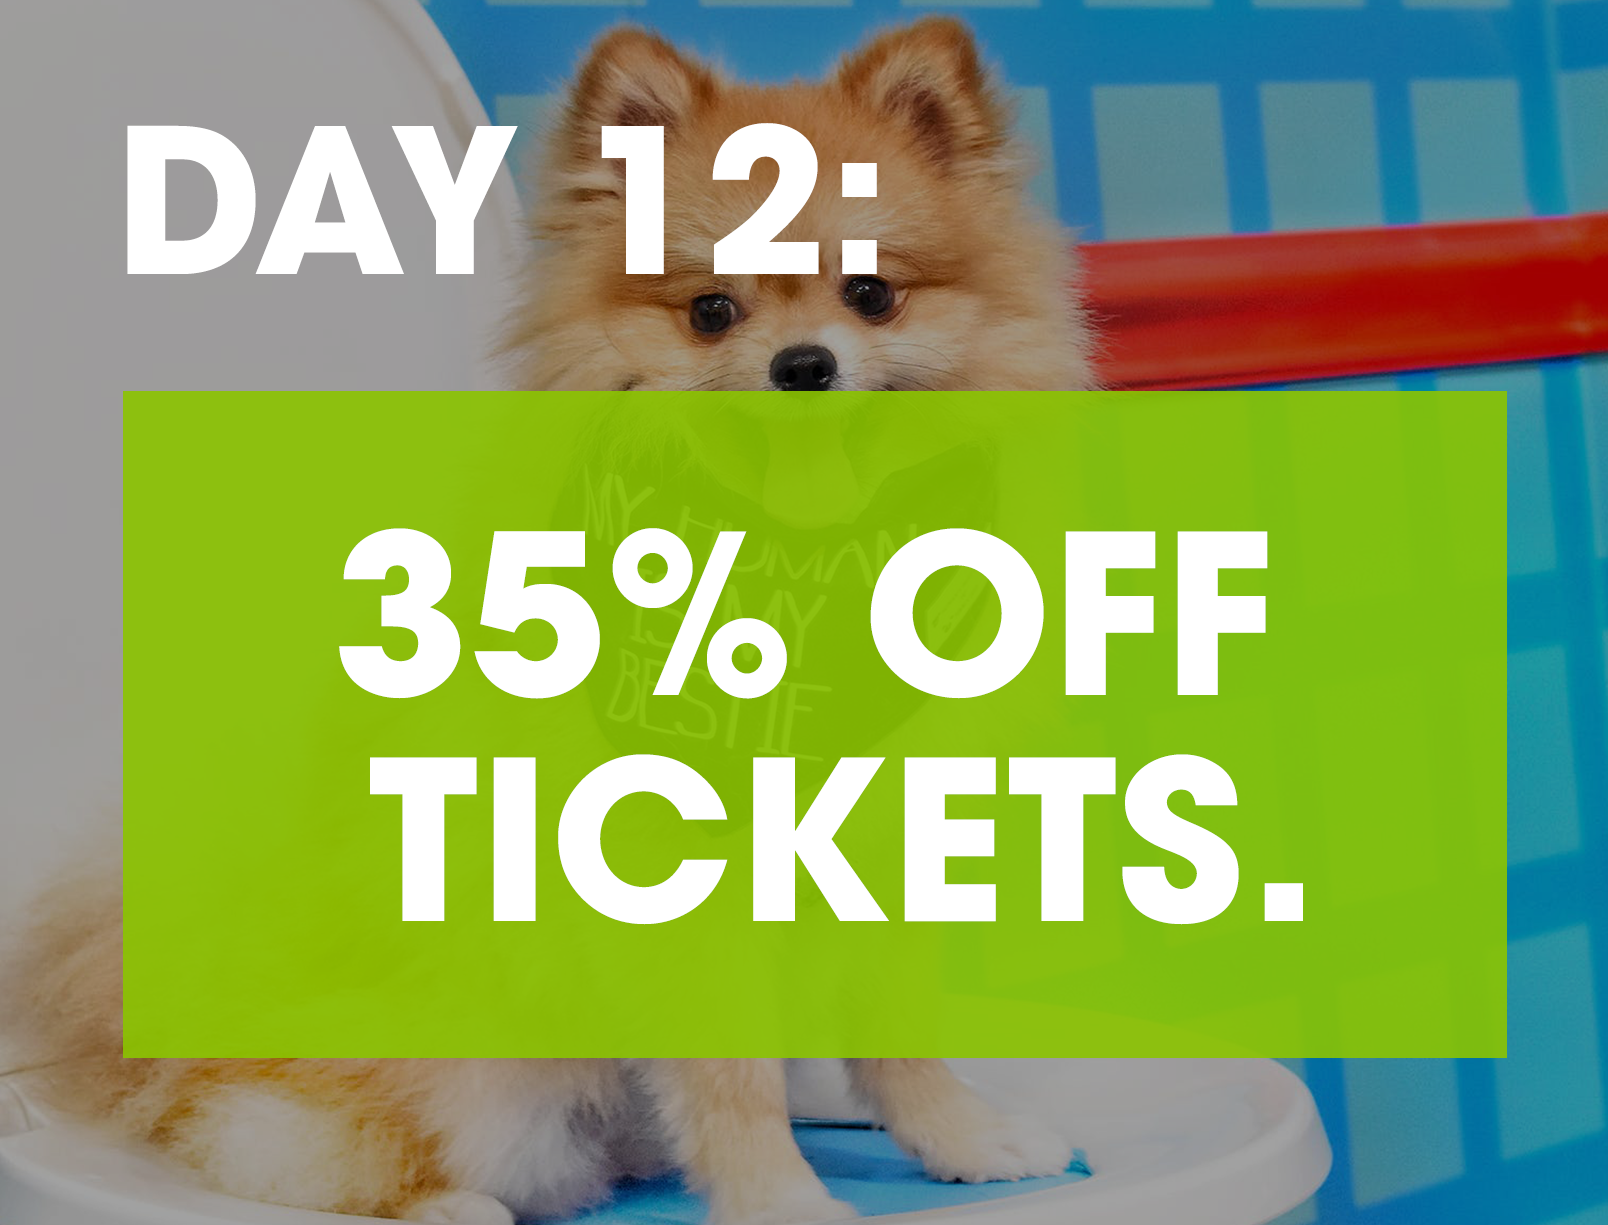 HUMAN'S BEST FRIEND - There's nothing ruff about this deal: get 35% off tickets to the Instagrammable dog pop-up sensation Human's Best Friend. Bring your pup and frolic through rooms designed to get your tails wagging.GET TICKETS >>